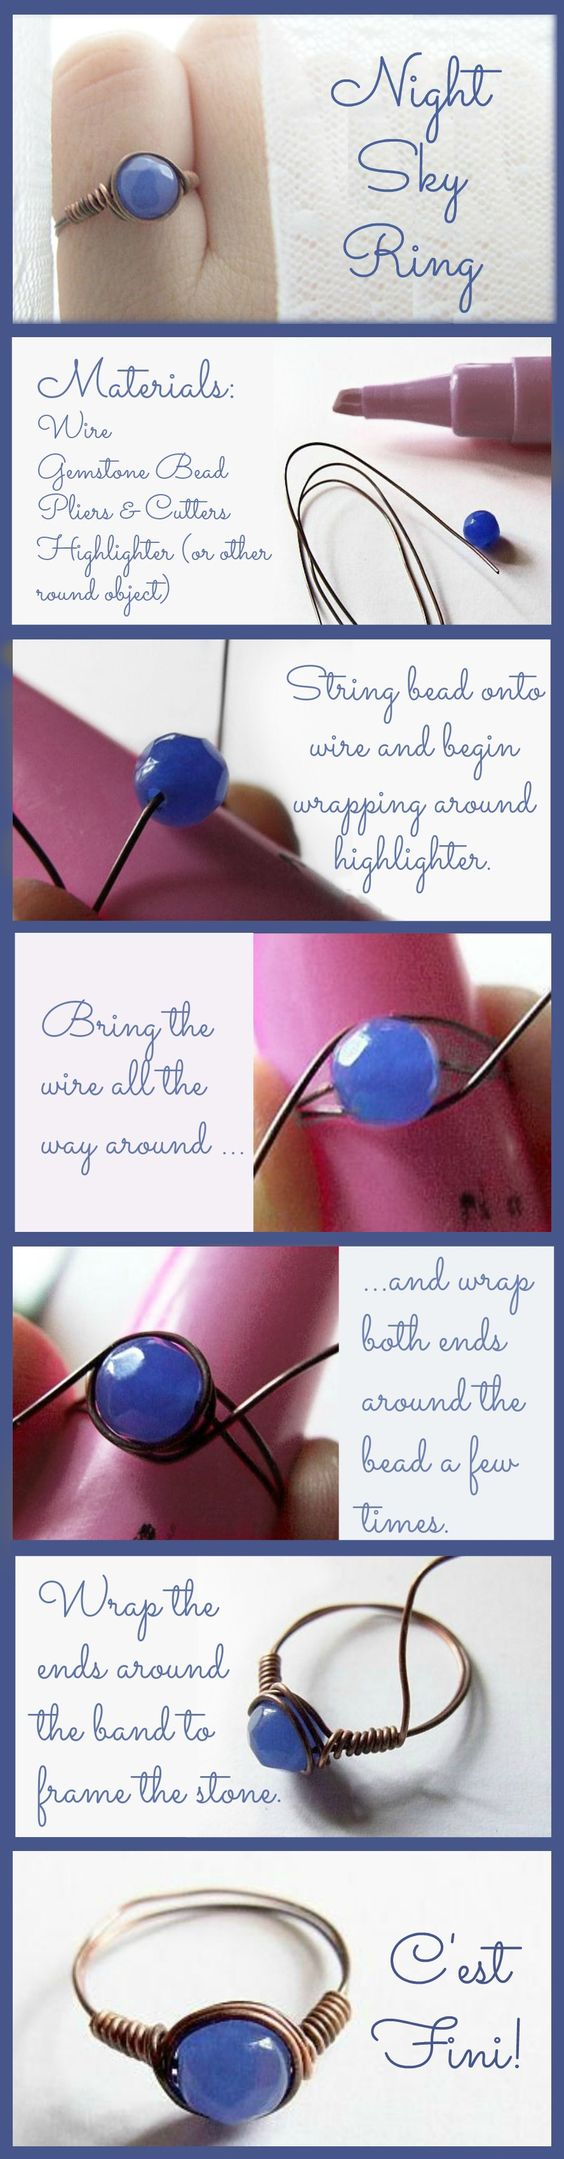 wire-rings-with-blue-gem via